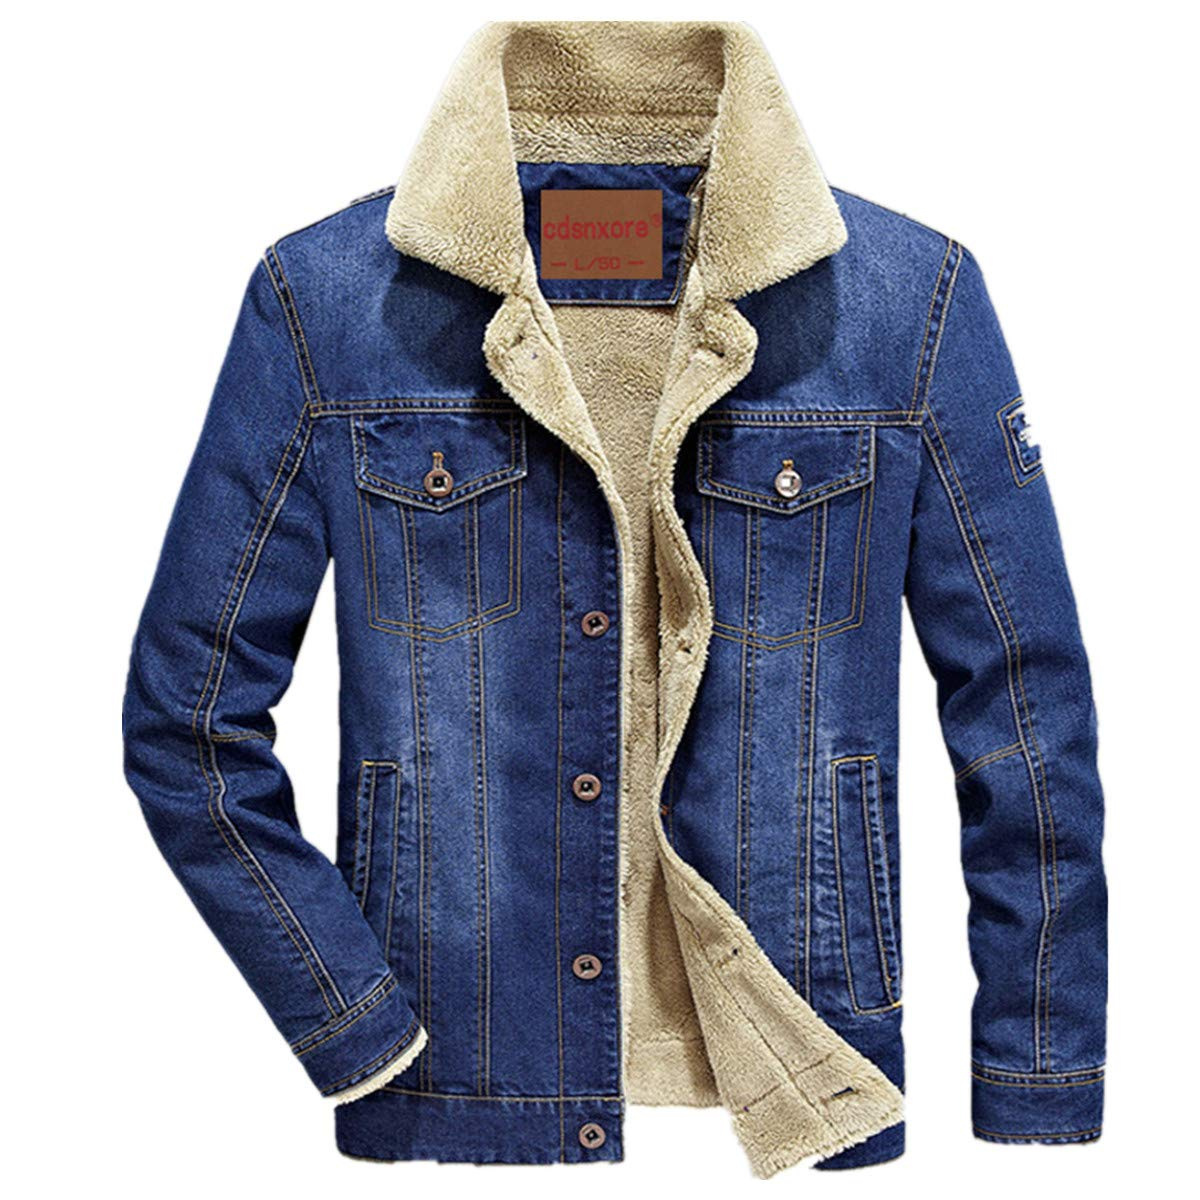 Herren Denim Jeansjacke mit Fell Jacke Mantel winterjacke Wintermantel für Winter 66009B